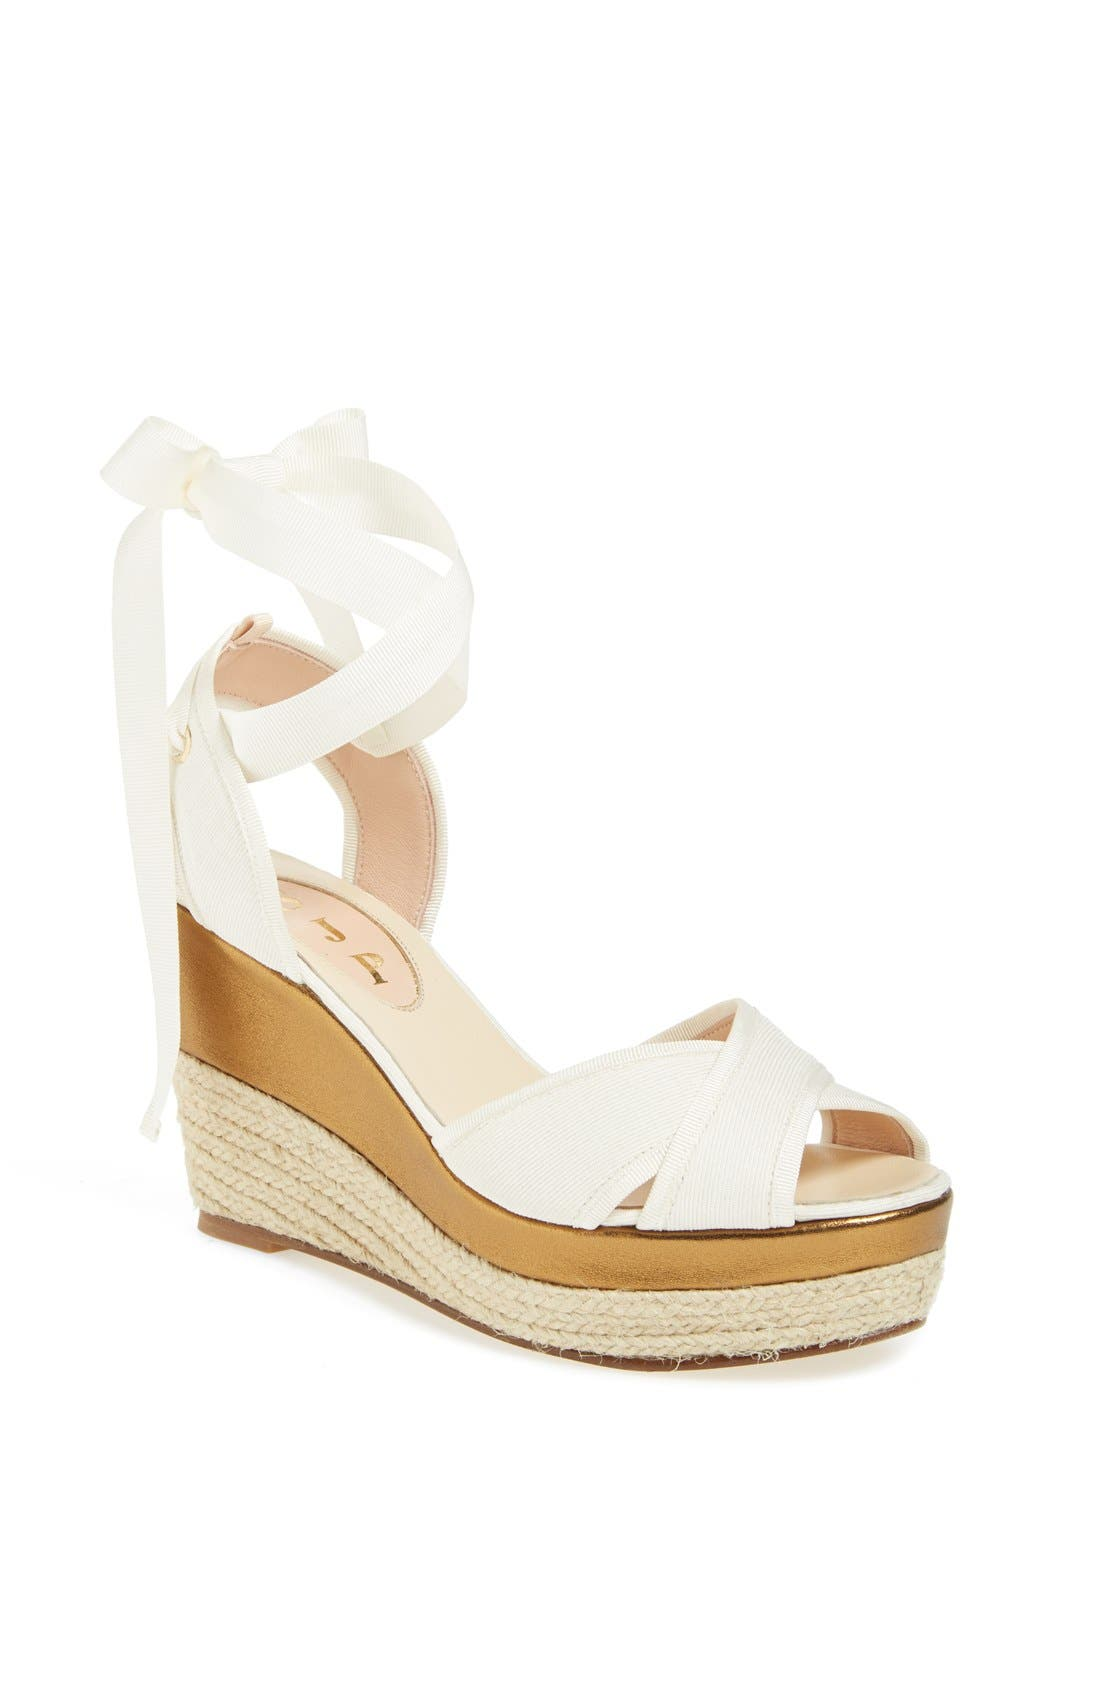 Alternate Image 1 Selected - SJP 'Leslie' Sandal (Nordstrom Exclusive)